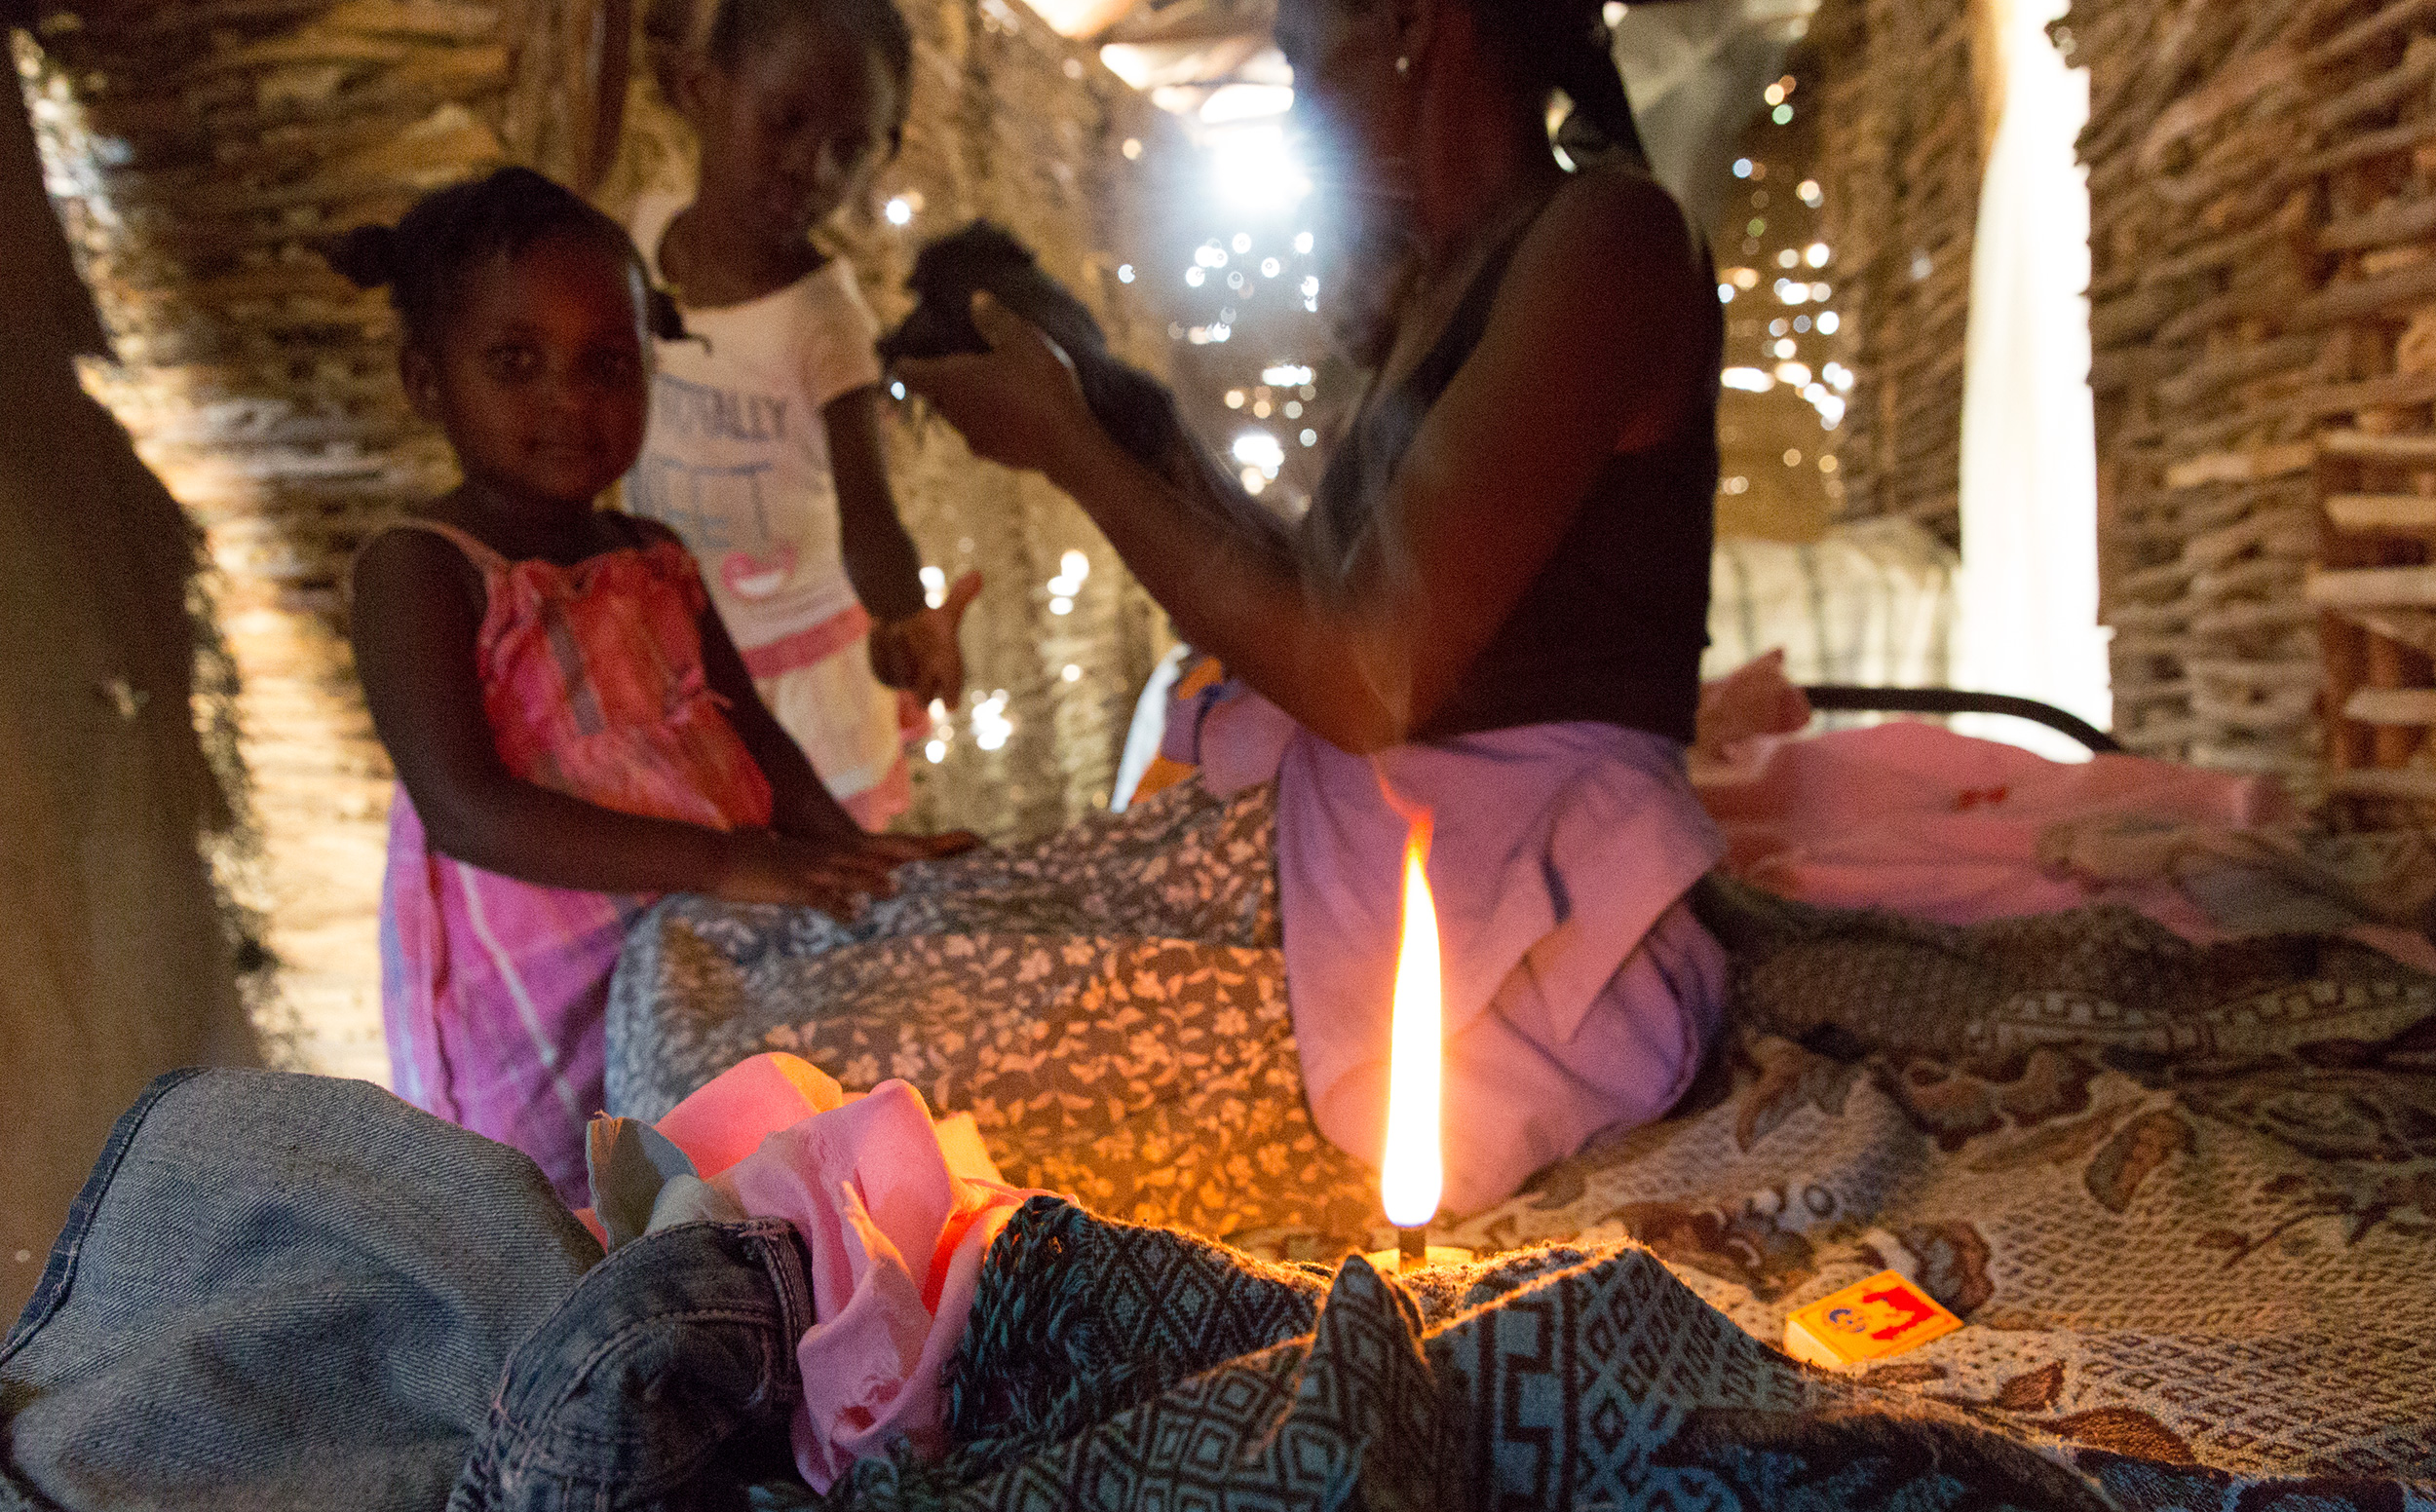 TRAVEL_HAITI_FREETHECHILDREN_lukeslights_haitian_laundry_lamp_unitetolight_3682_WB